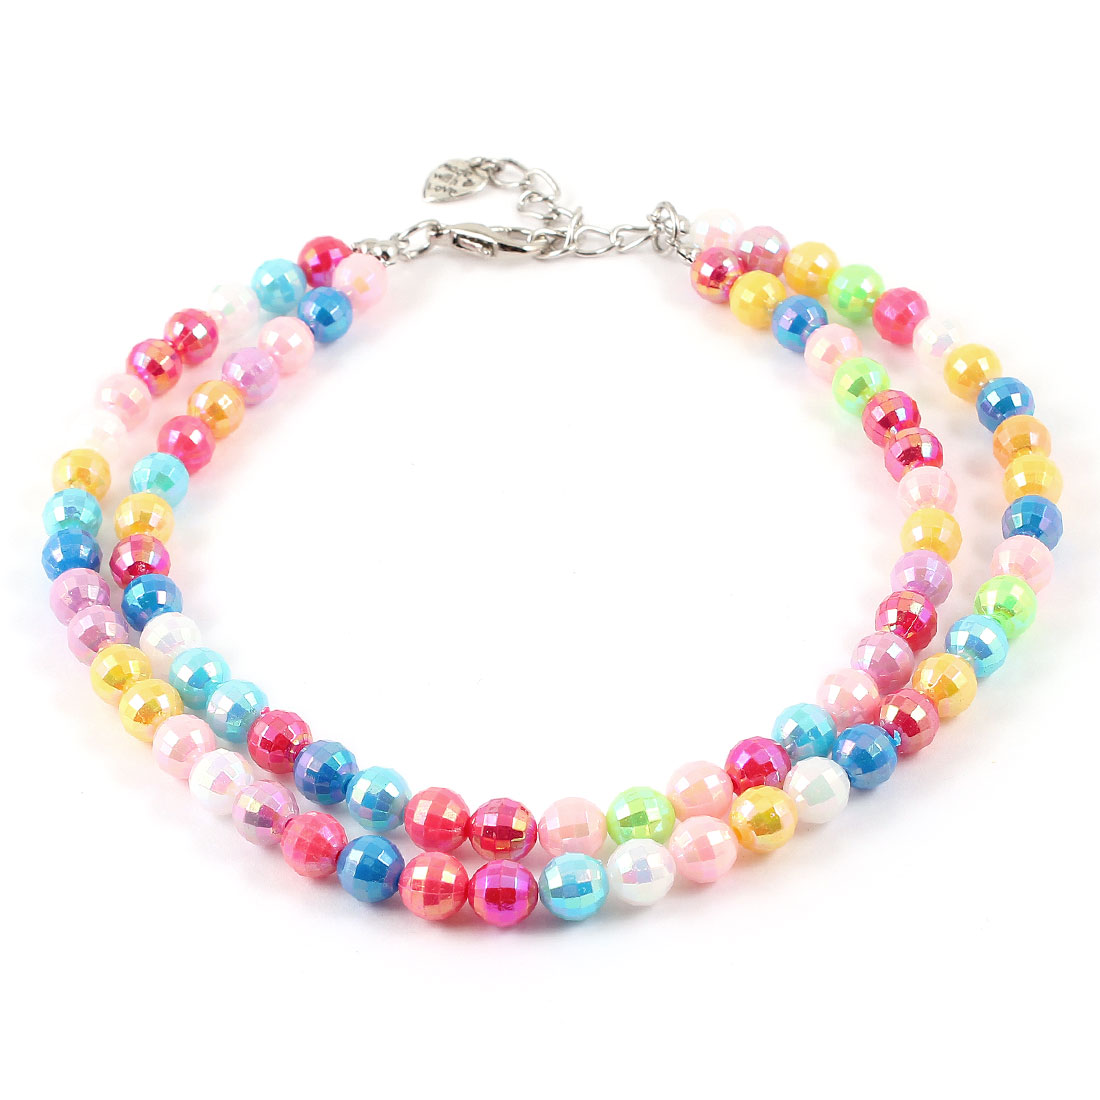 Colorful Dual Row Round Beads Linked Pet Dog Yorkie Cat Collar Necklace L